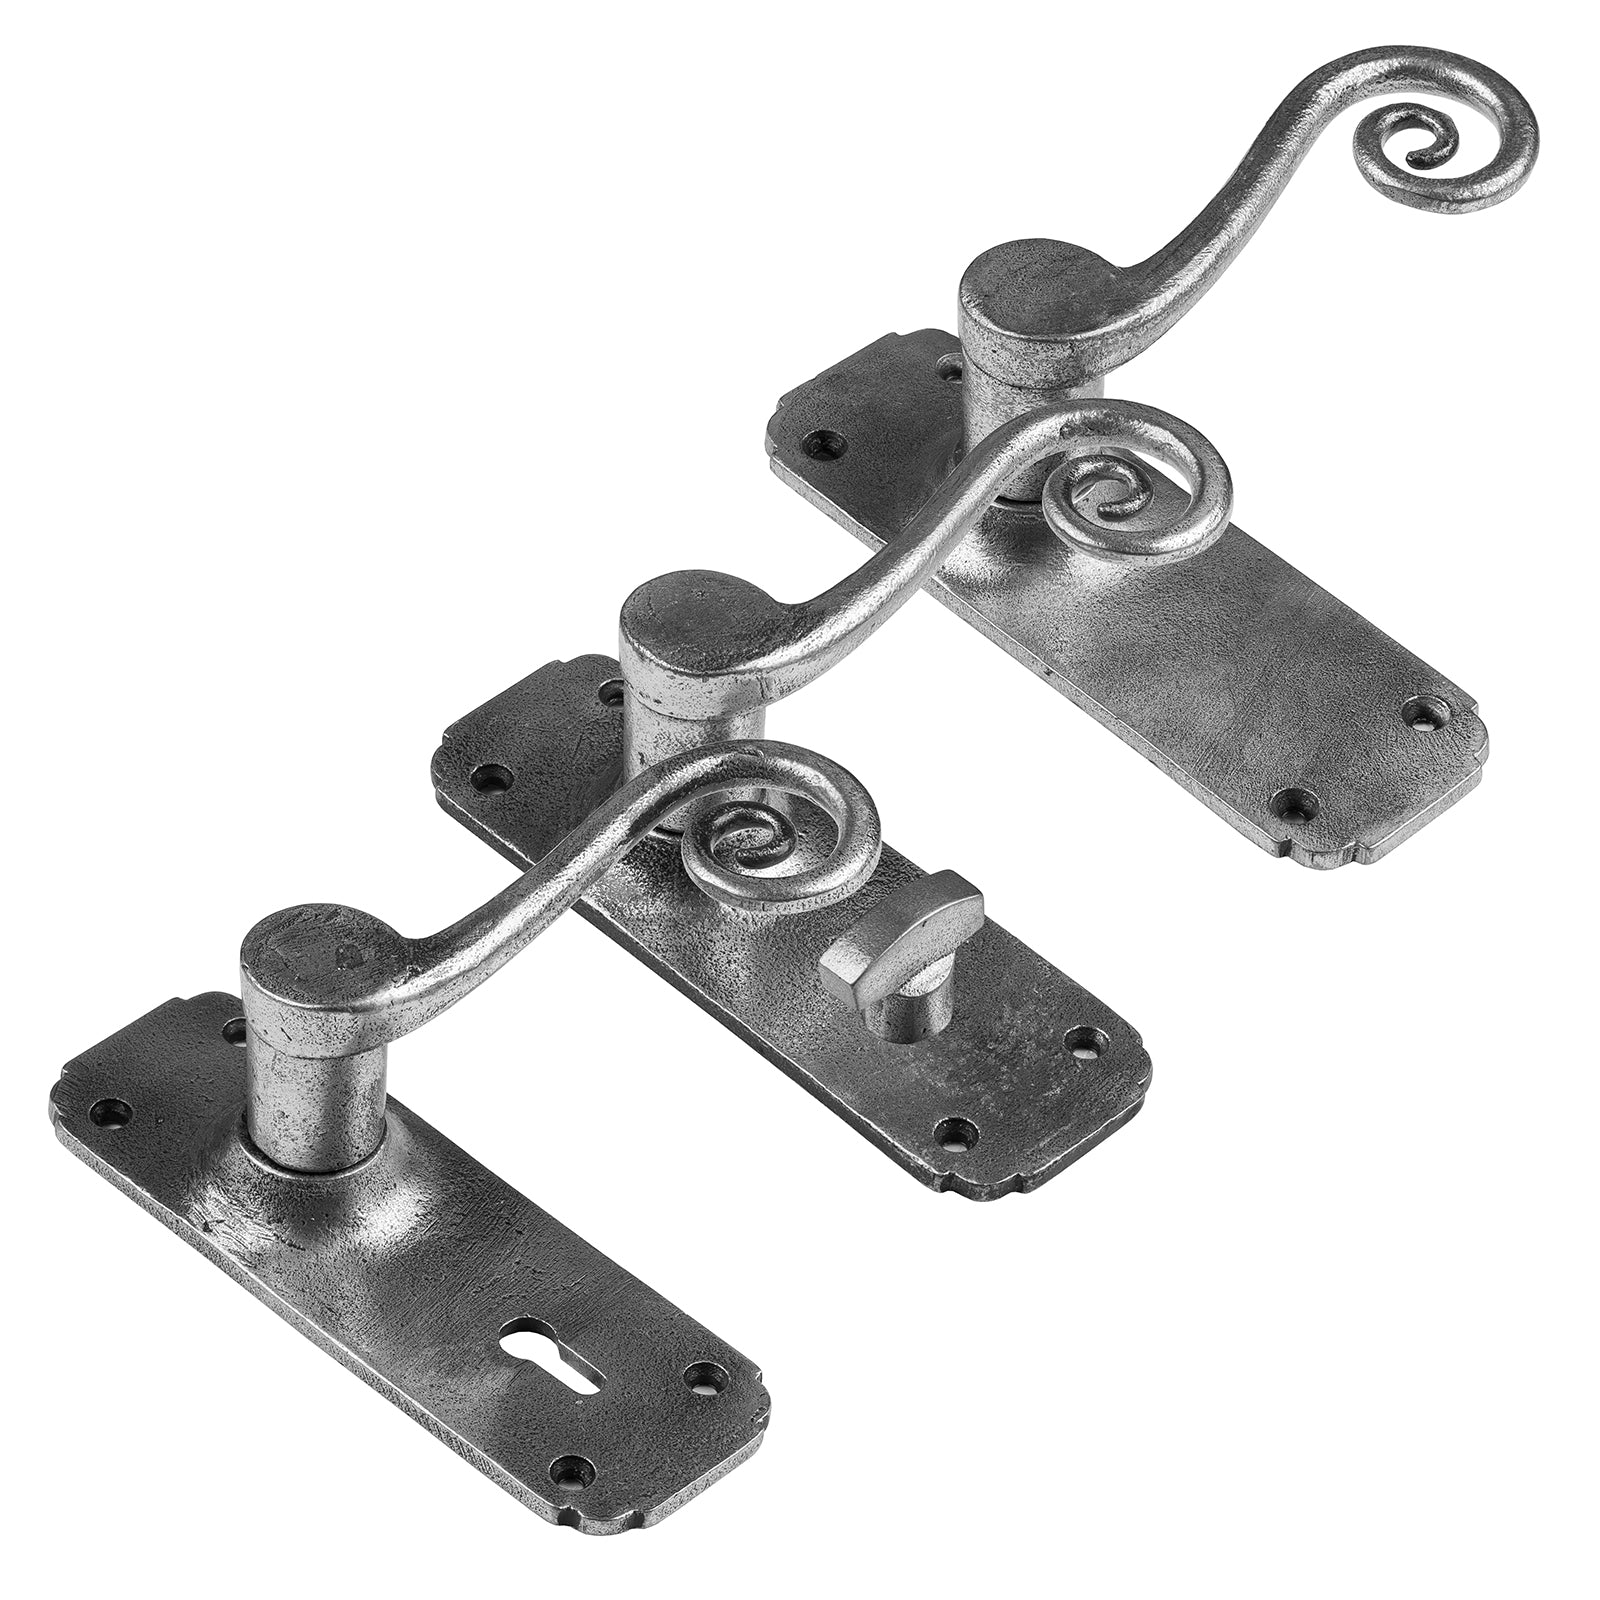 Monkey Tail Lever Handle Pewter Lock Latch Bathroom